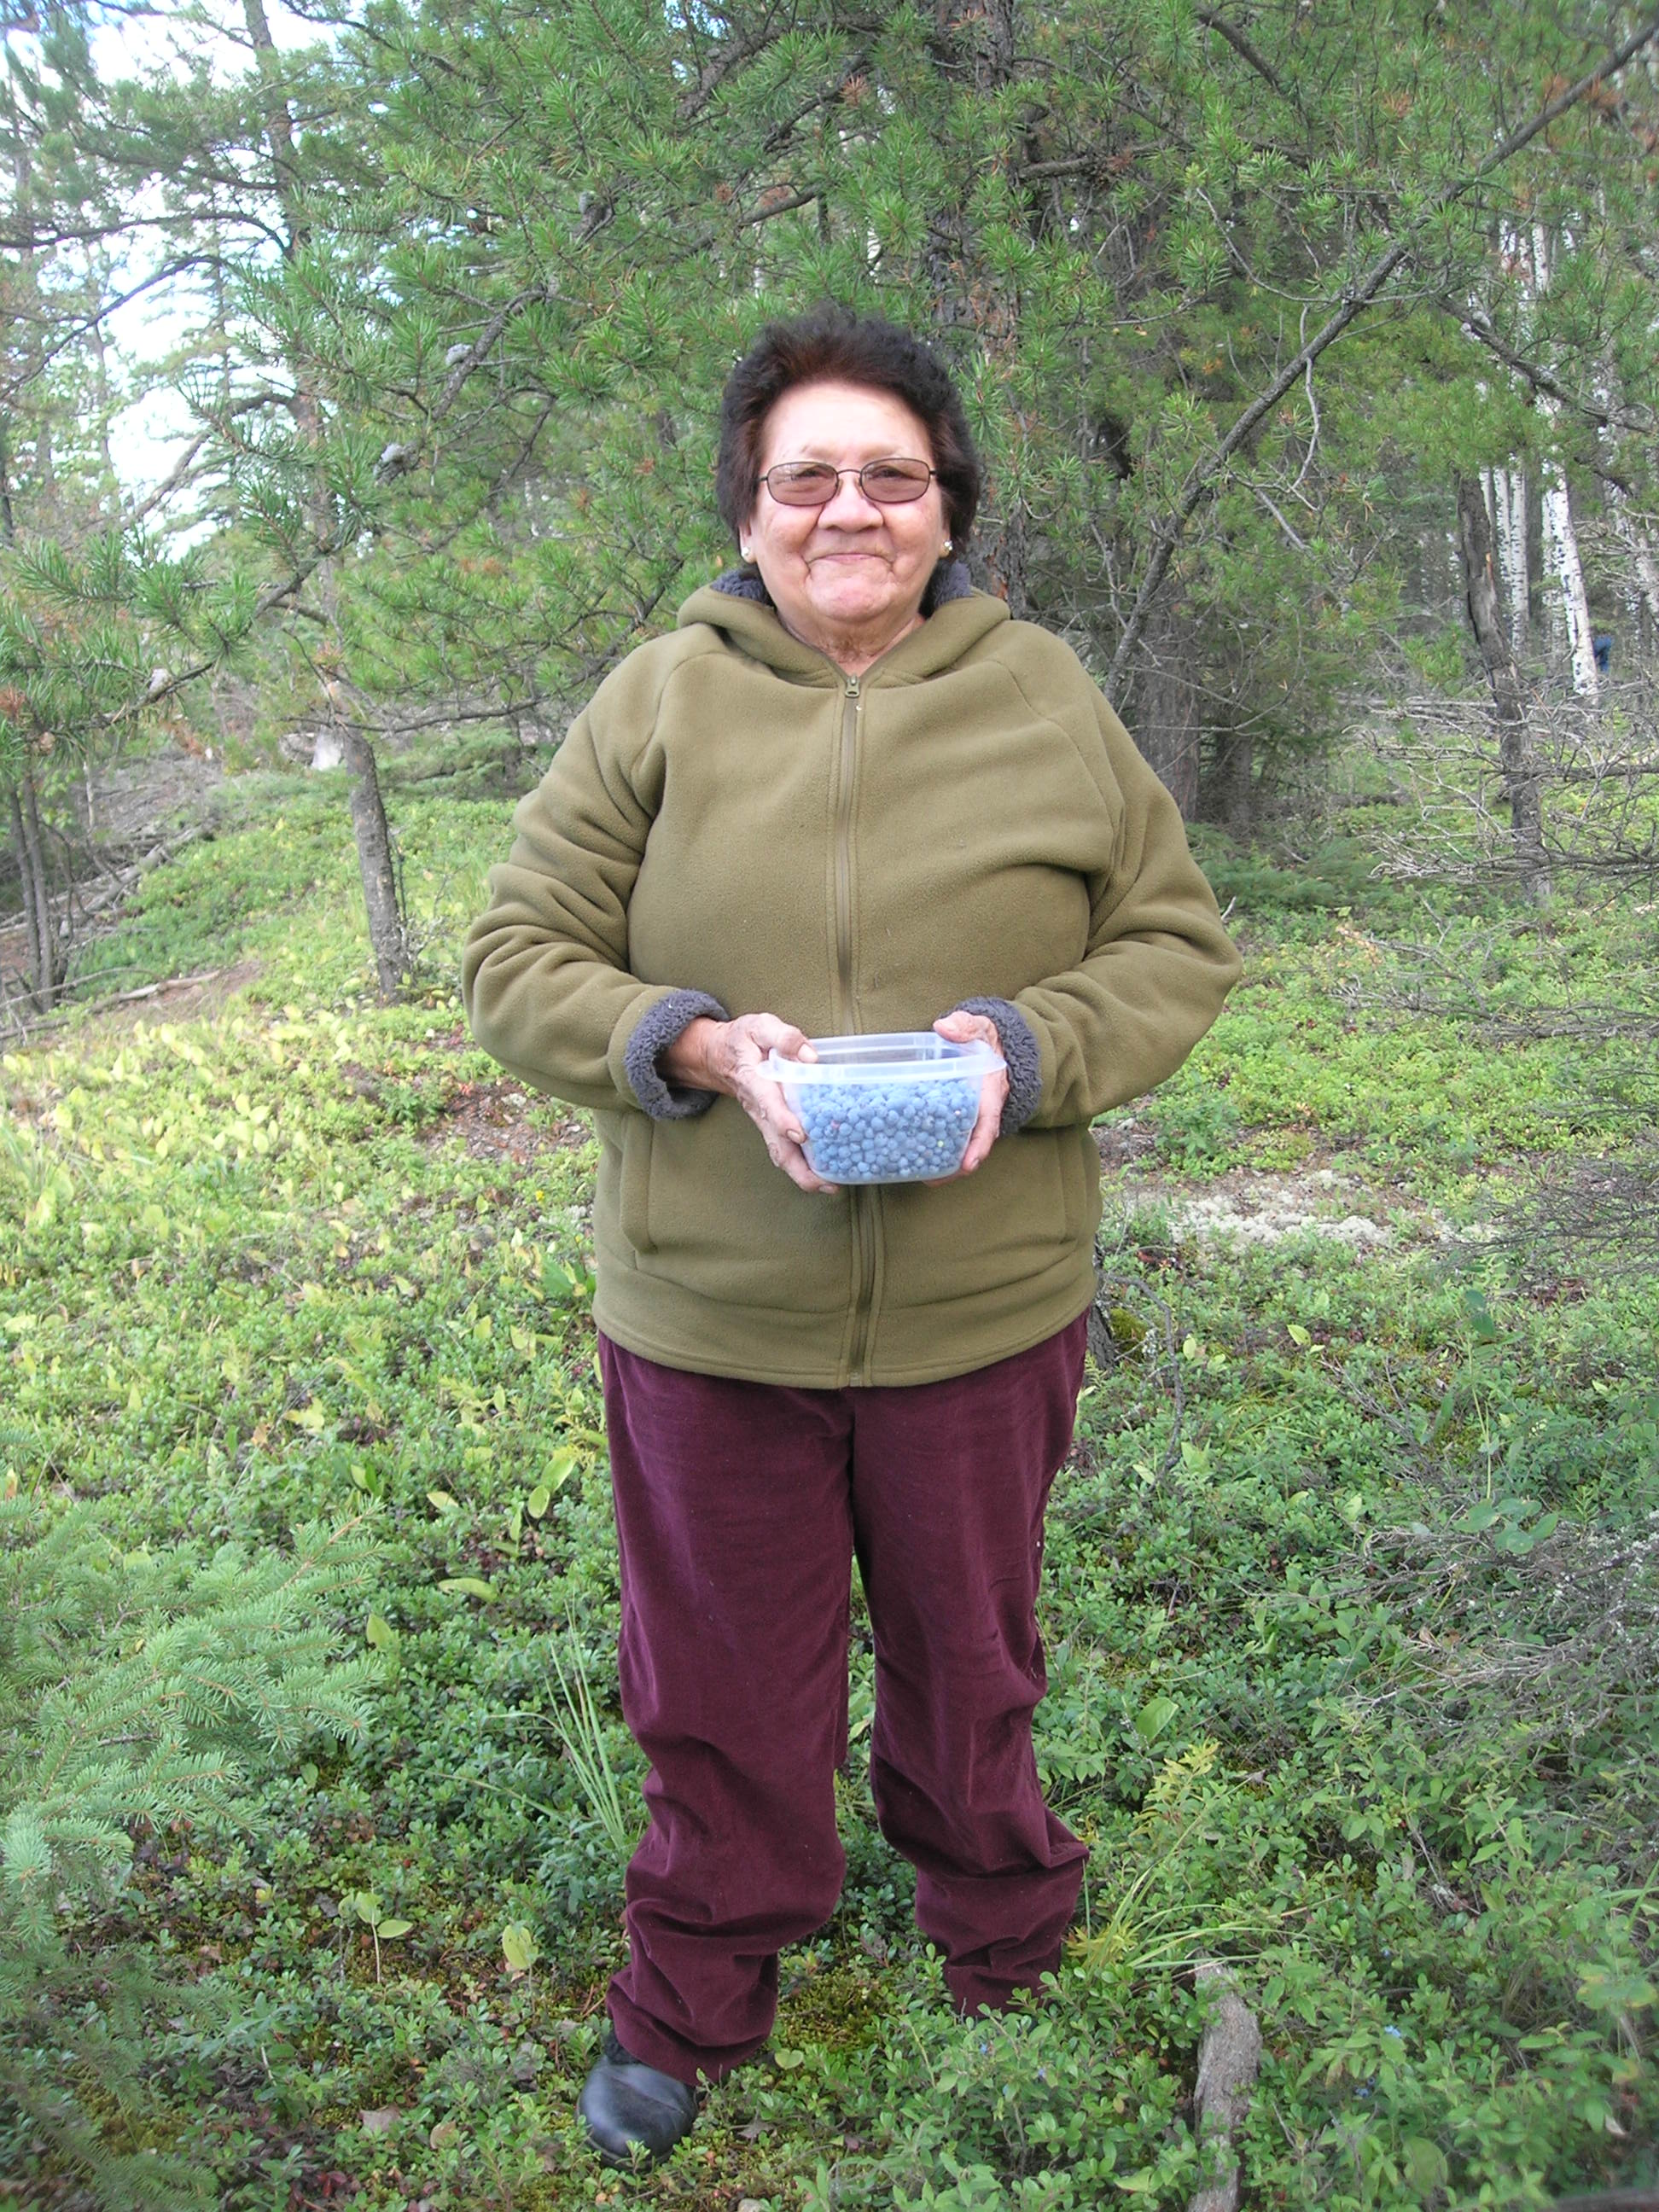 Celina Harpe, a member of the WBEA-Fort McKay Berry Focus Group since 2010, with blueberries harvested for testing at one of the group's monitored berry patches.